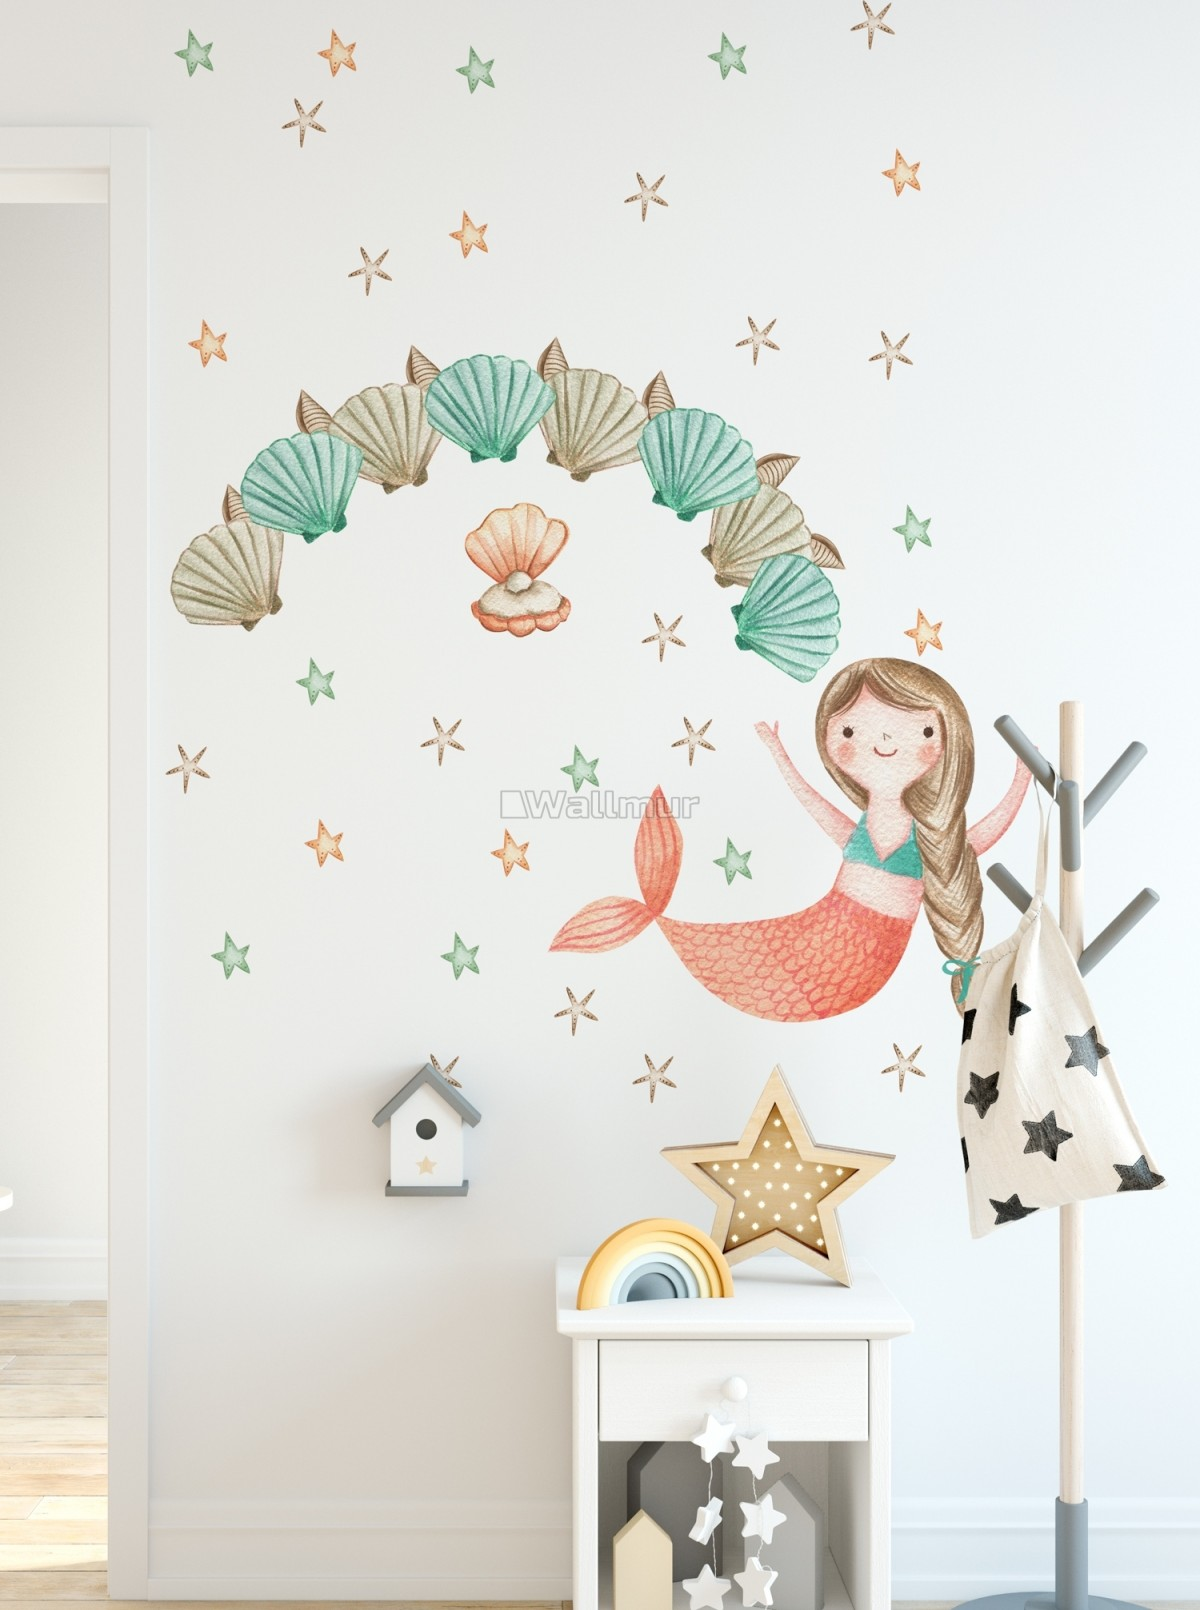 Kids Mermaid Girls with Pearl Oyster Wall Decal Sticker